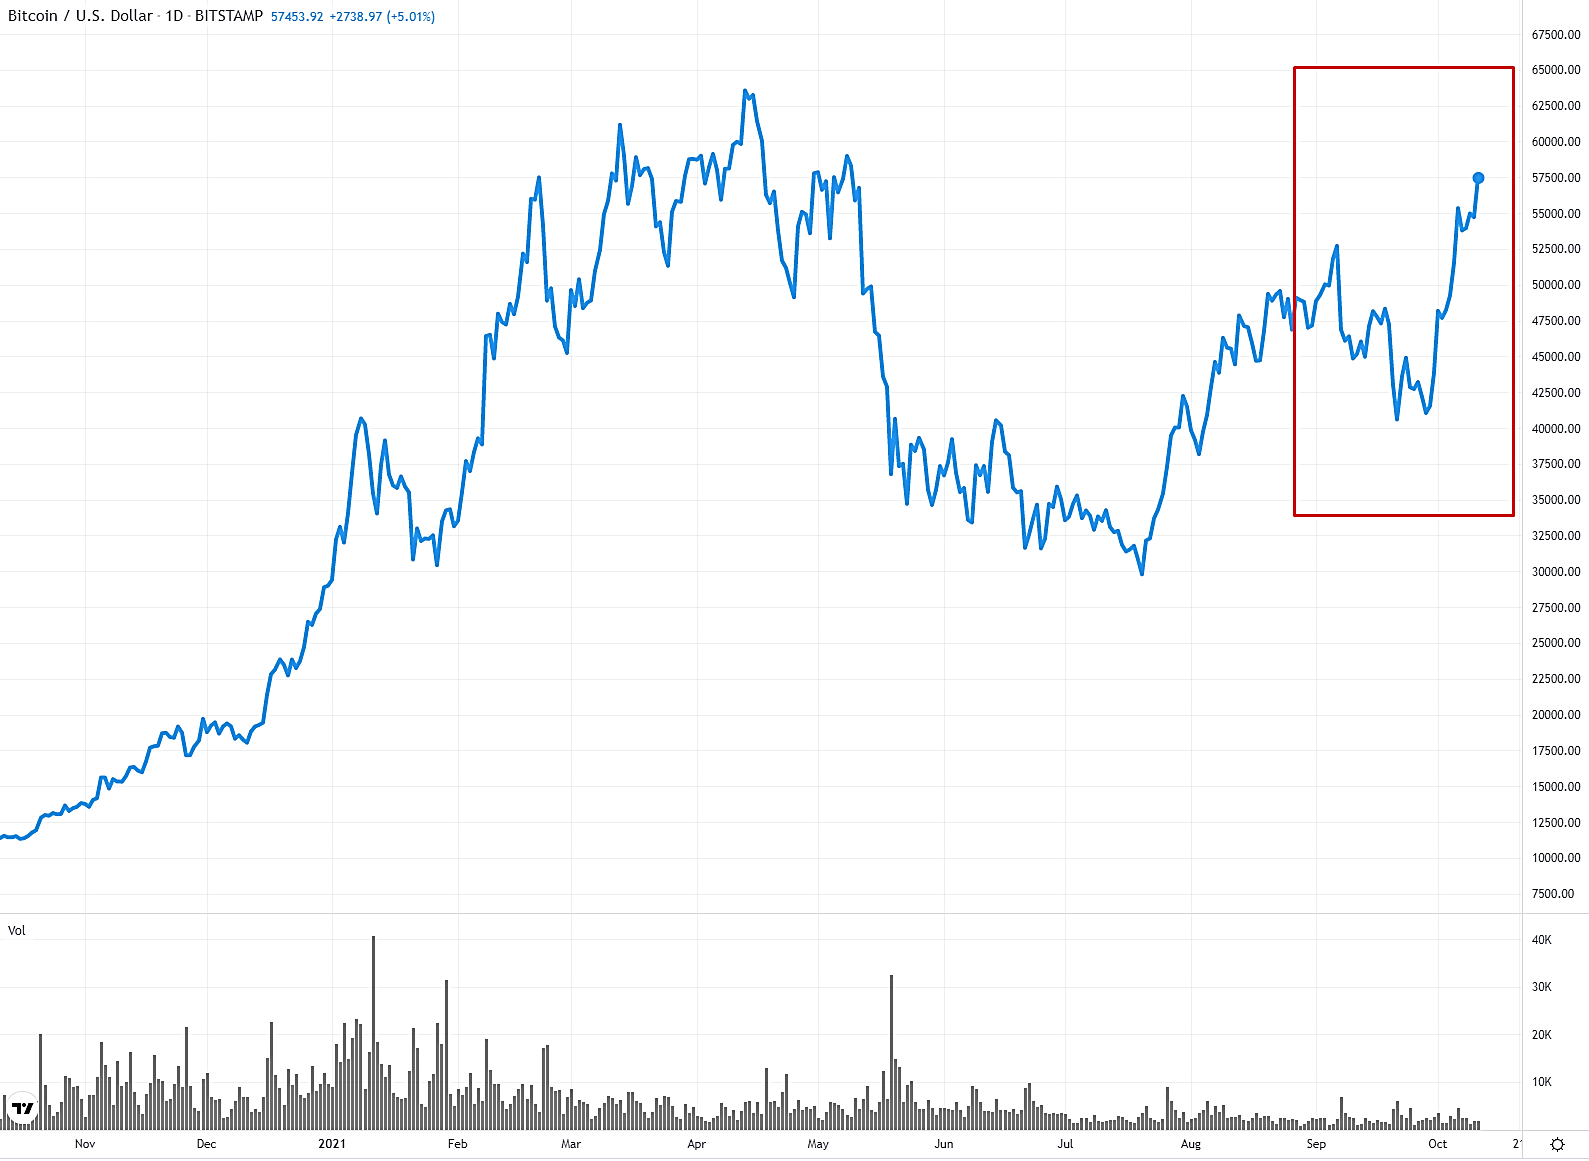 Bitcoin Daily Chart - Cryptocurrency Regulation